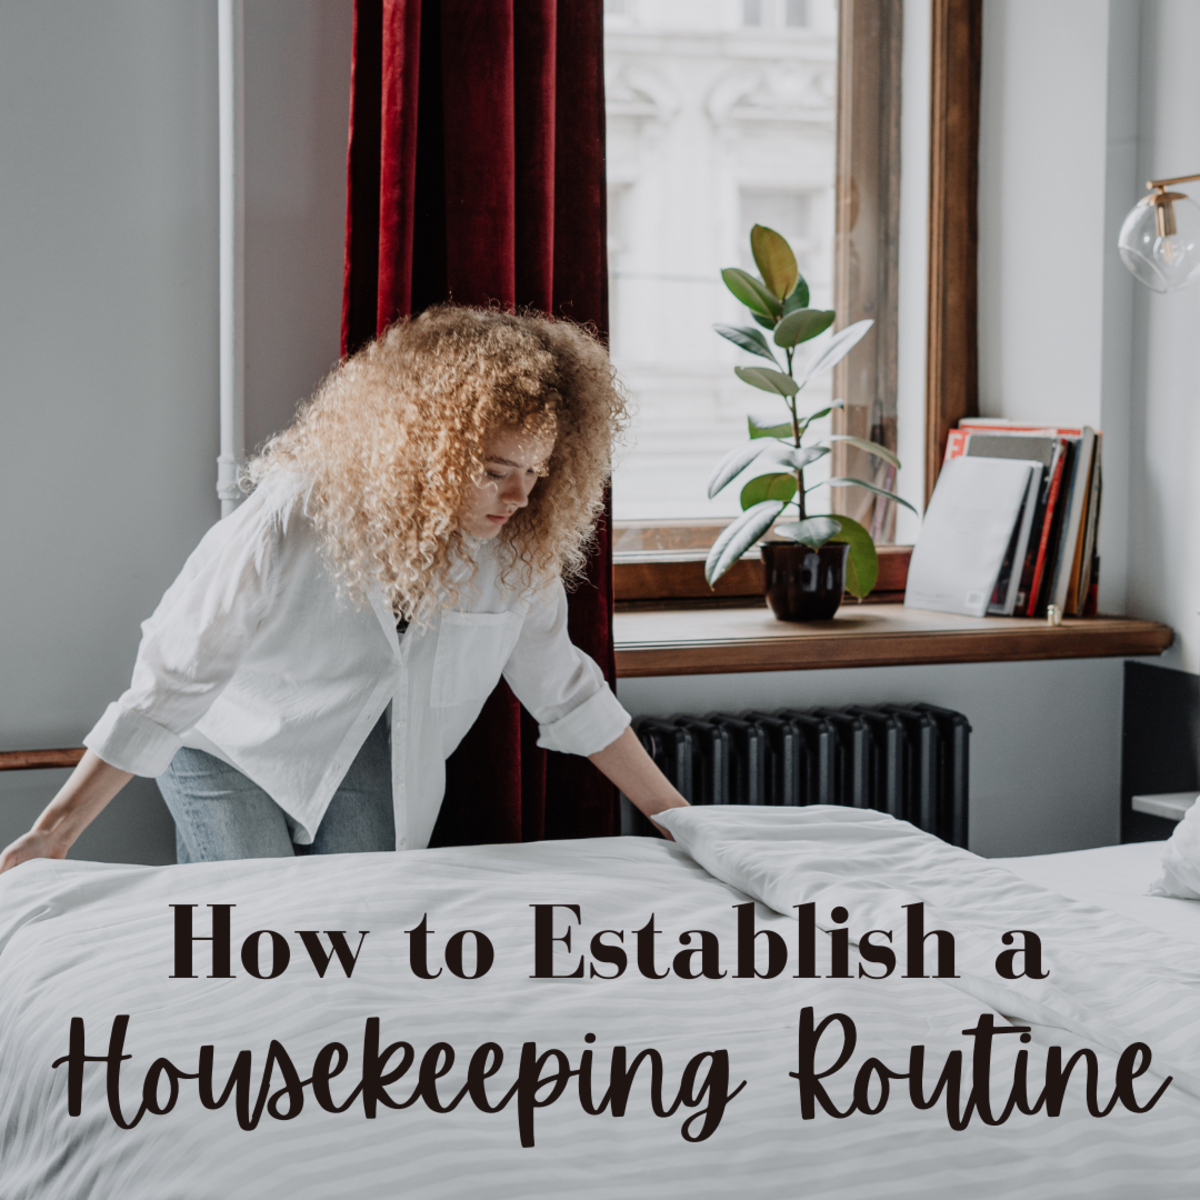 Keeping your house clean and organized is key!